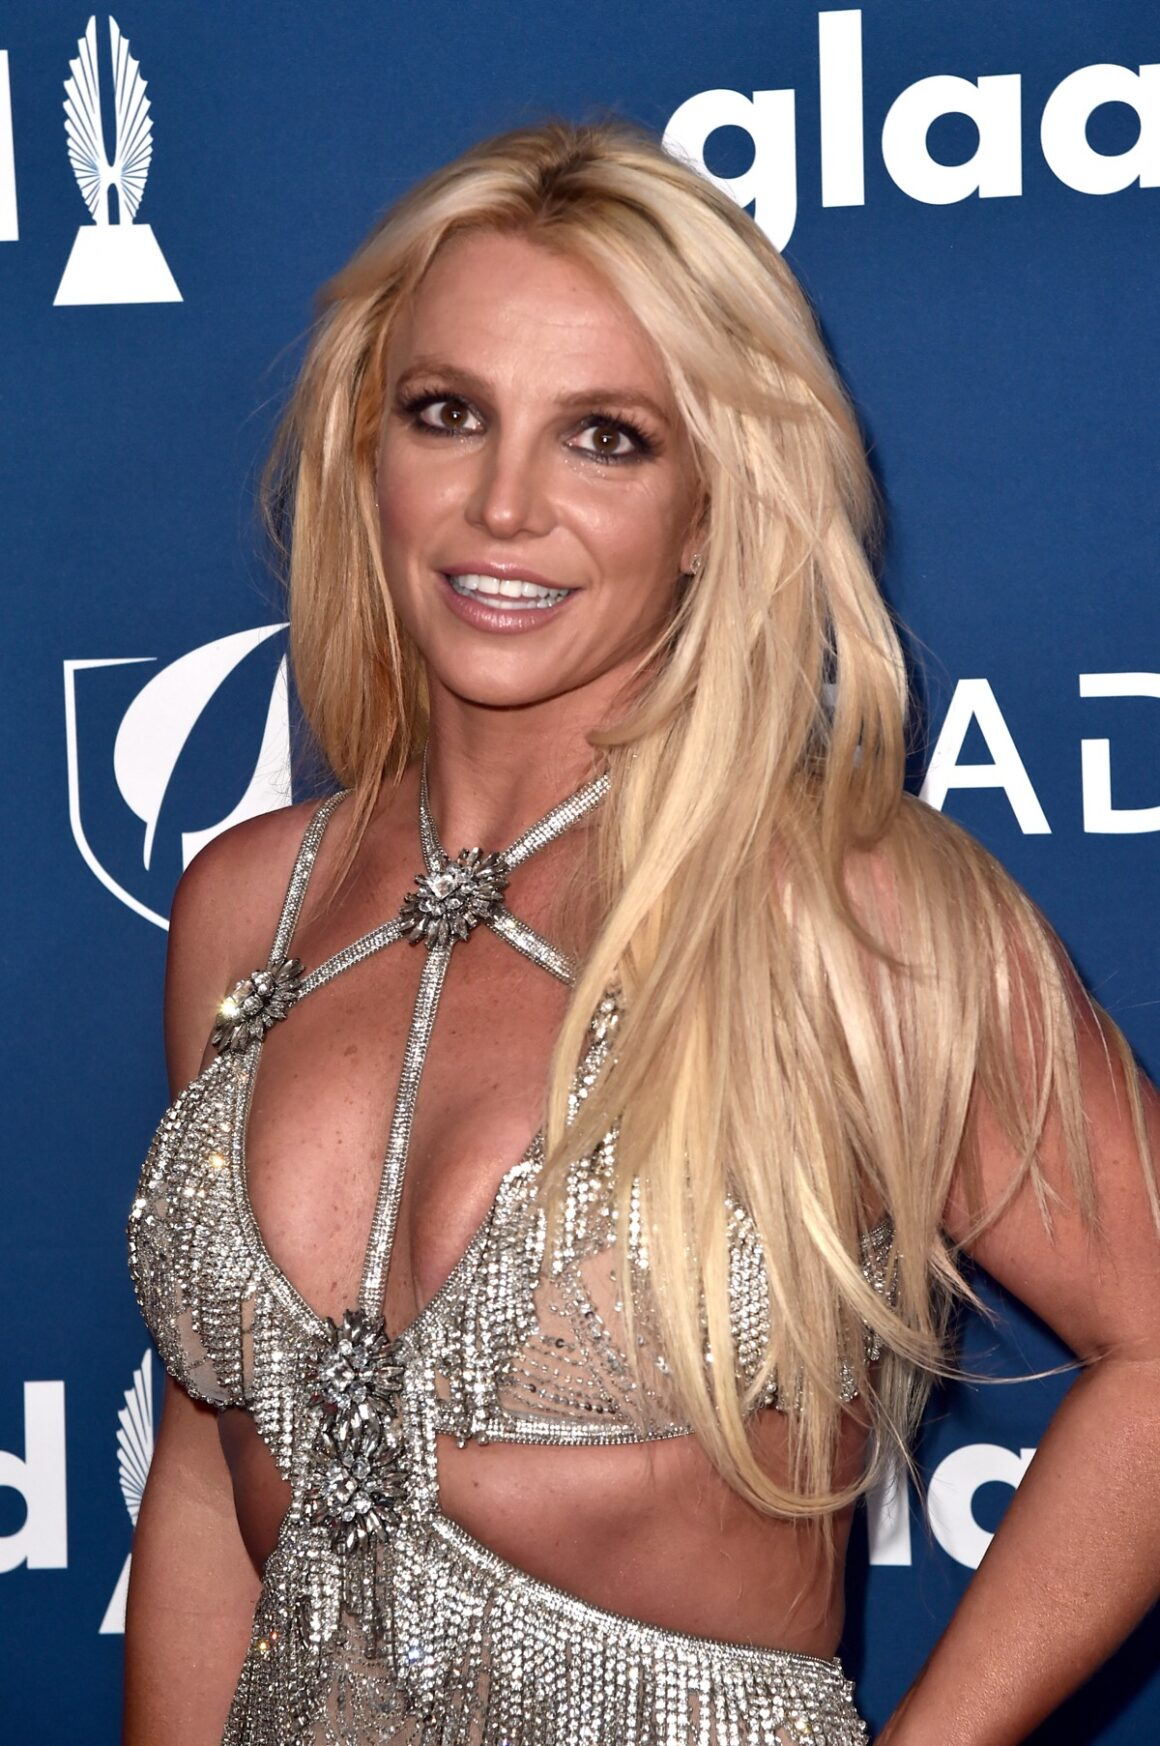 Britney Spears 29th Annual GLAAD Media Awards - Arrivals